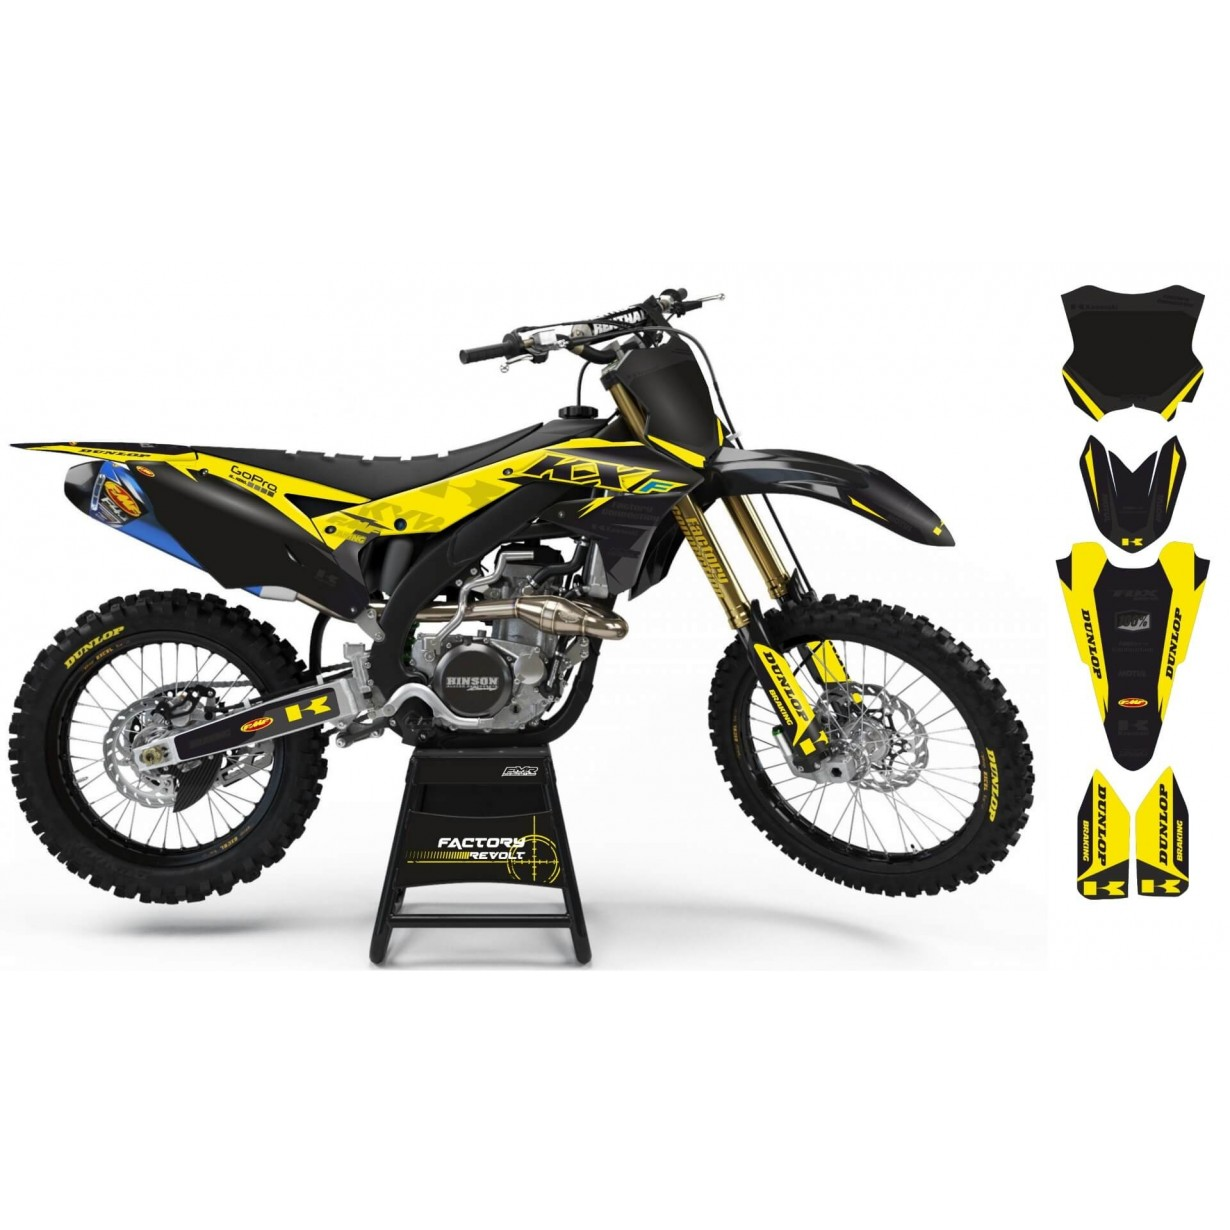 Kit déco Perso KAWASAKI Factory Revolt A26B6 black/yellow